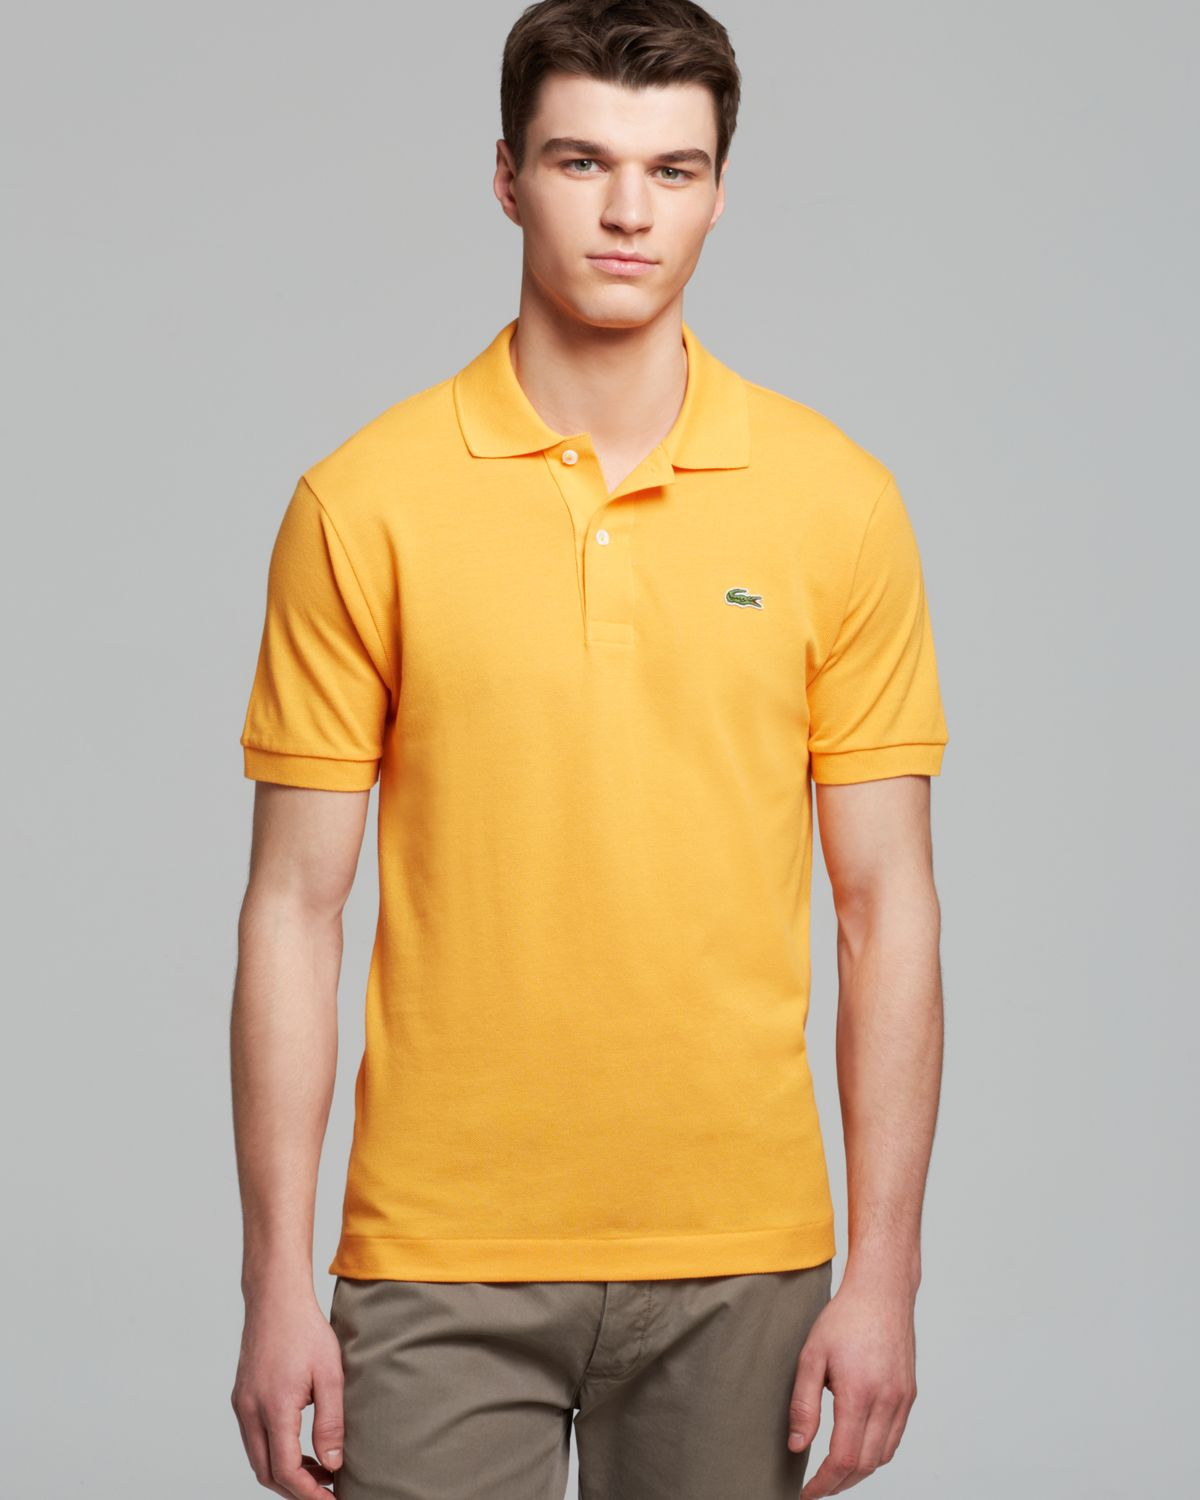 34a7c193 Lacoste Classic Short Sleeve Pique Polo Shirt in Yellow for Men - Lyst